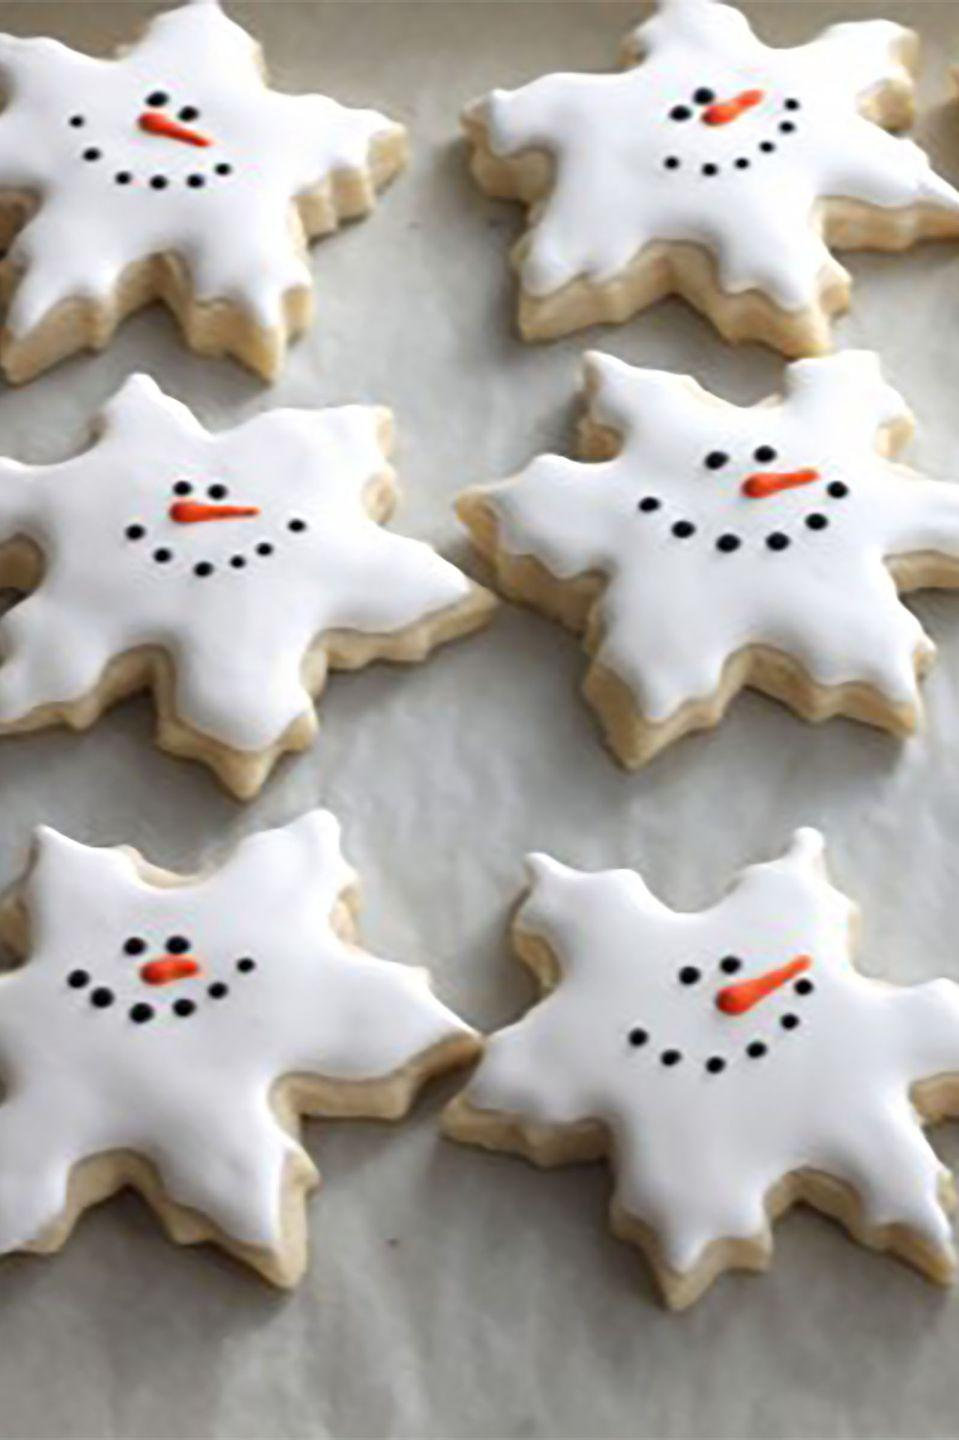 "<p>What's better than building a snowman? Eating one in cookie form, of course. </p><p><strong>Get the recipe at <a href=""http://www.createdby-diane.com/2012/12/snowman-snowflake-cookies.html"" rel=""nofollow noopener"" target=""_blank"" data-ylk=""slk:Created By Diane"" class=""link rapid-noclick-resp"">Created By Diane</a>.</strong> </p>"